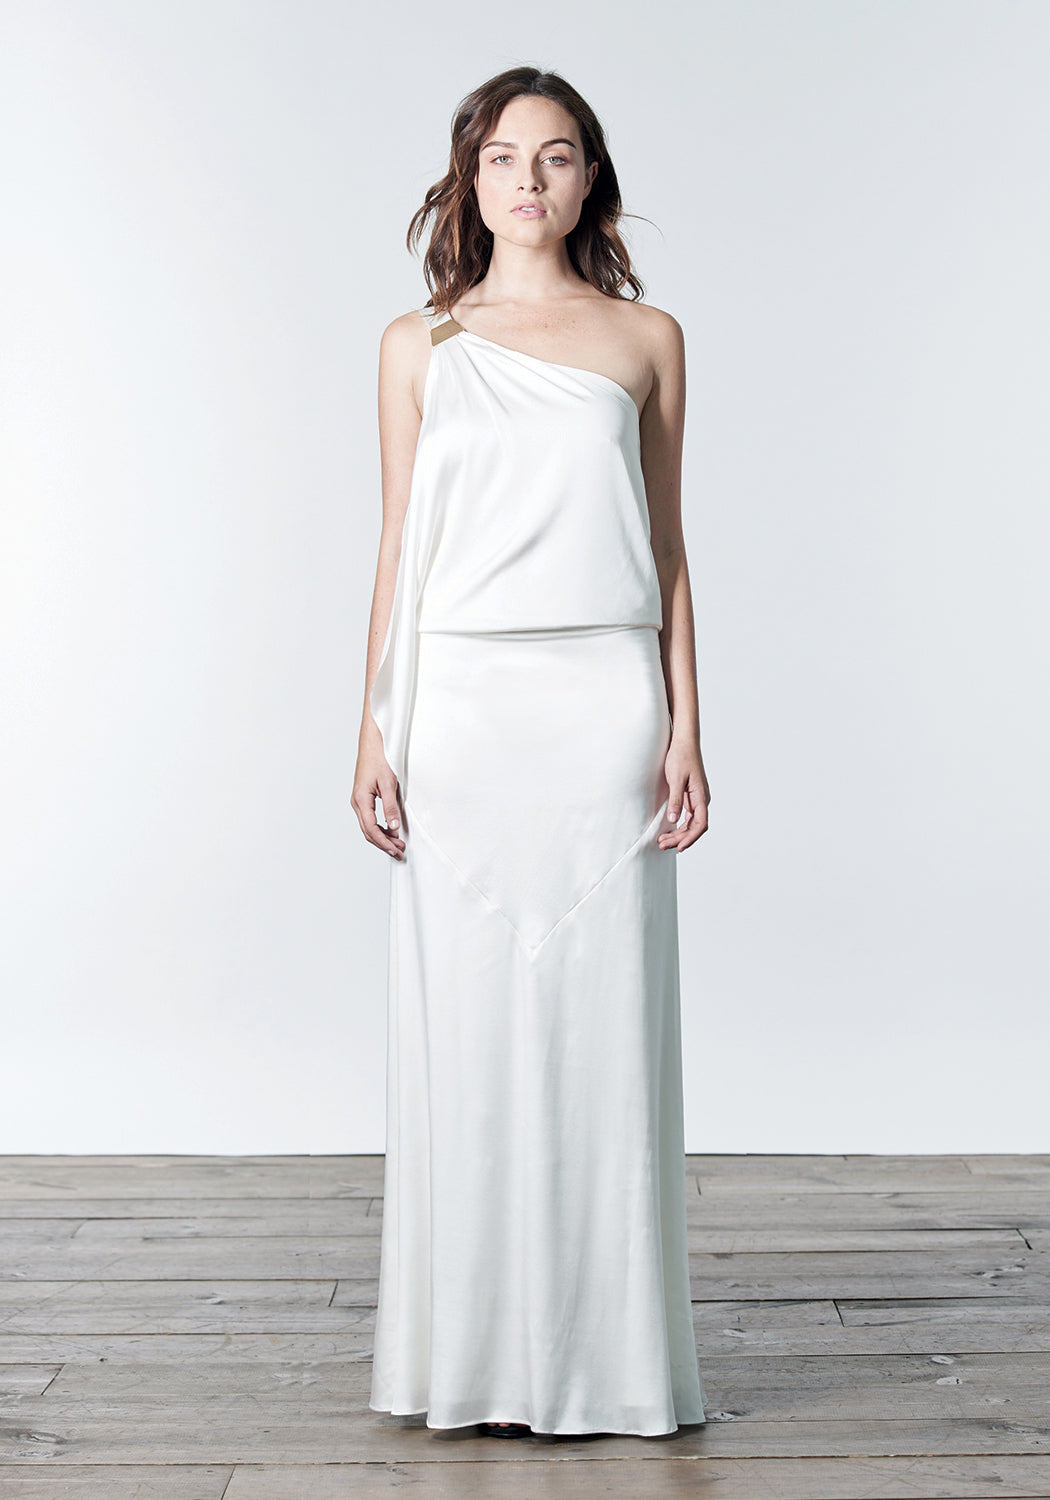 White, floor length, one-shoulder, stretch silk satin grecian bridesmaid dress gown.